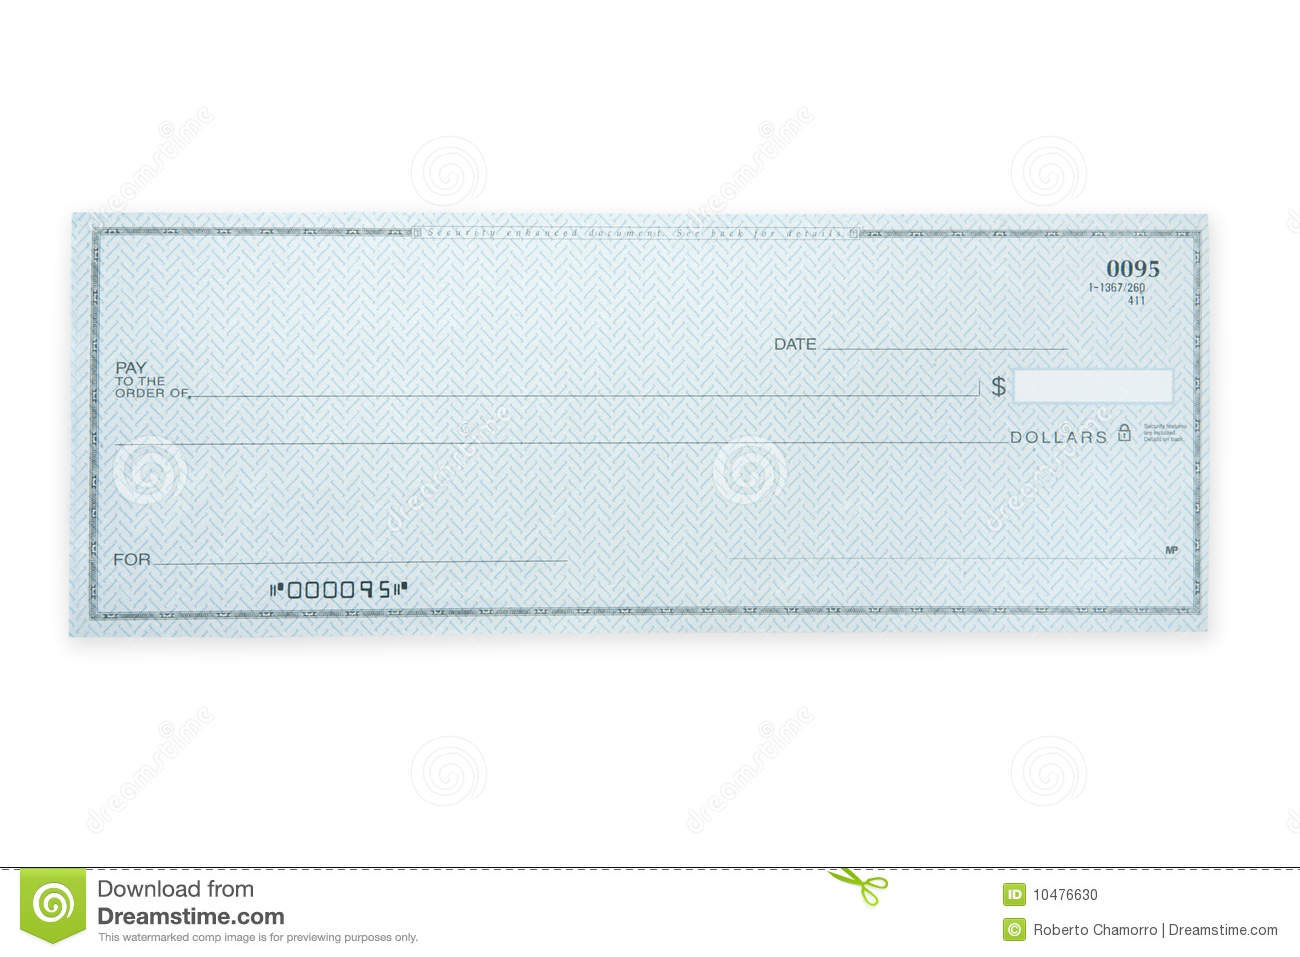 Oversized check template download roho4senses oversized check template download cheaphphosting Images